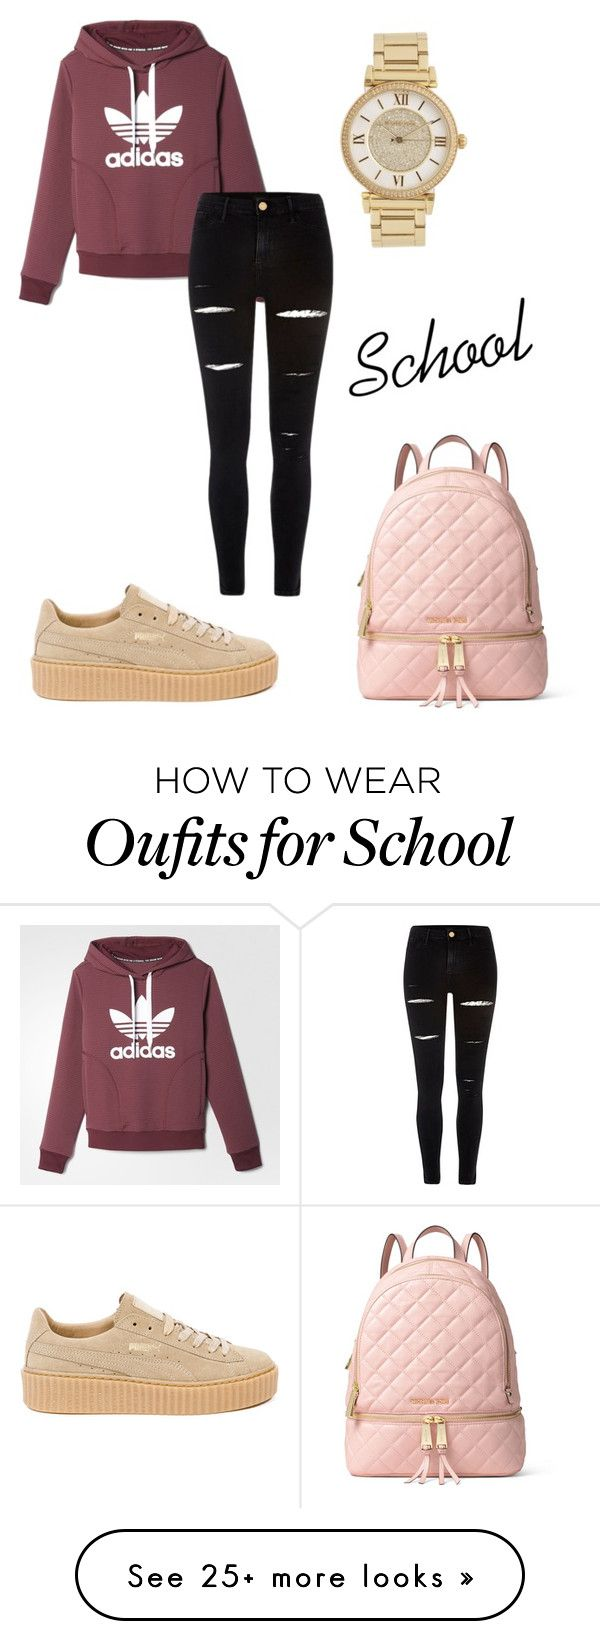 """School"" by probelmsproject on Polyvore featuring adidas, River Island, Michael Kors, Puma and MICHAEL Michael Kors"